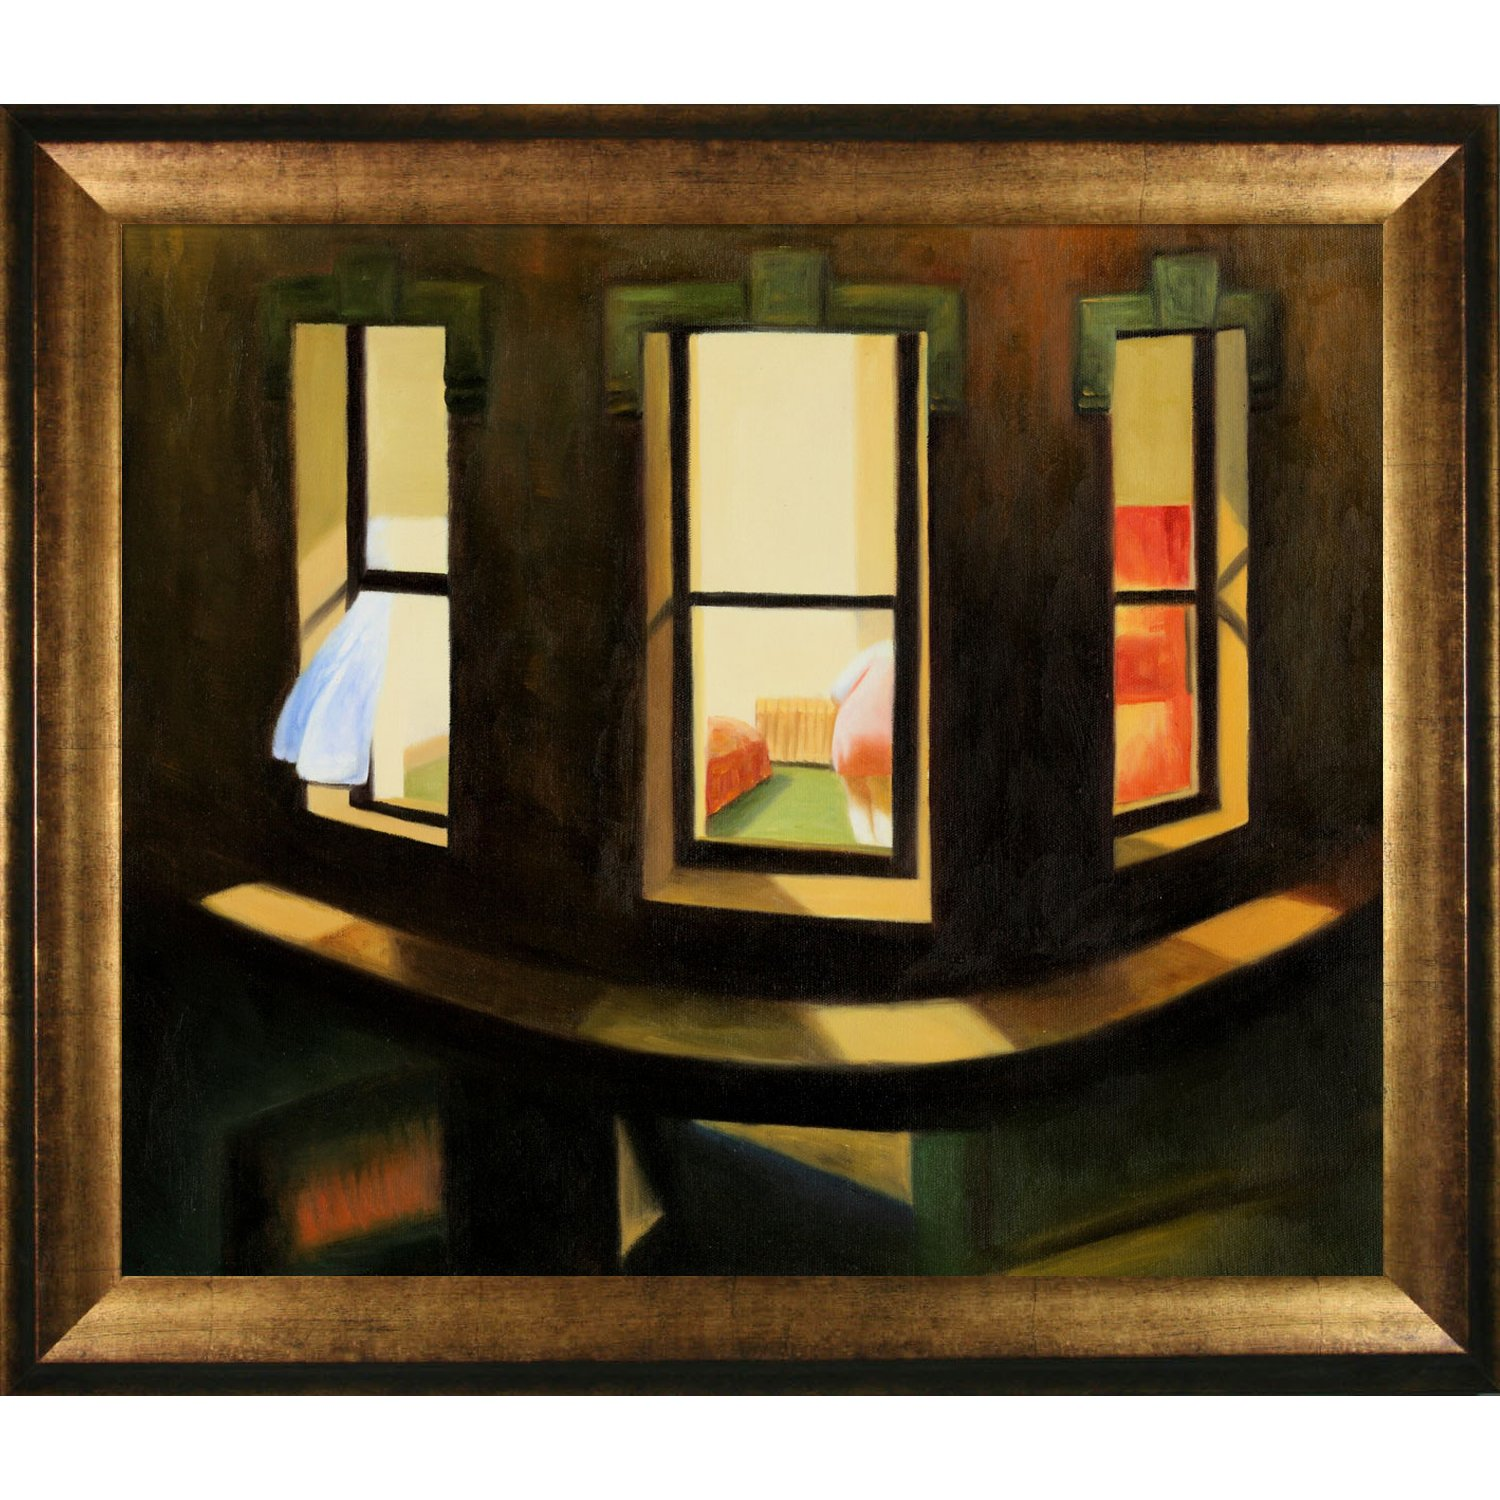 Overstockart Hopper Night Windows Artwork With Athenian Gold Frame Antique Finish Amazon In Home Kitchen